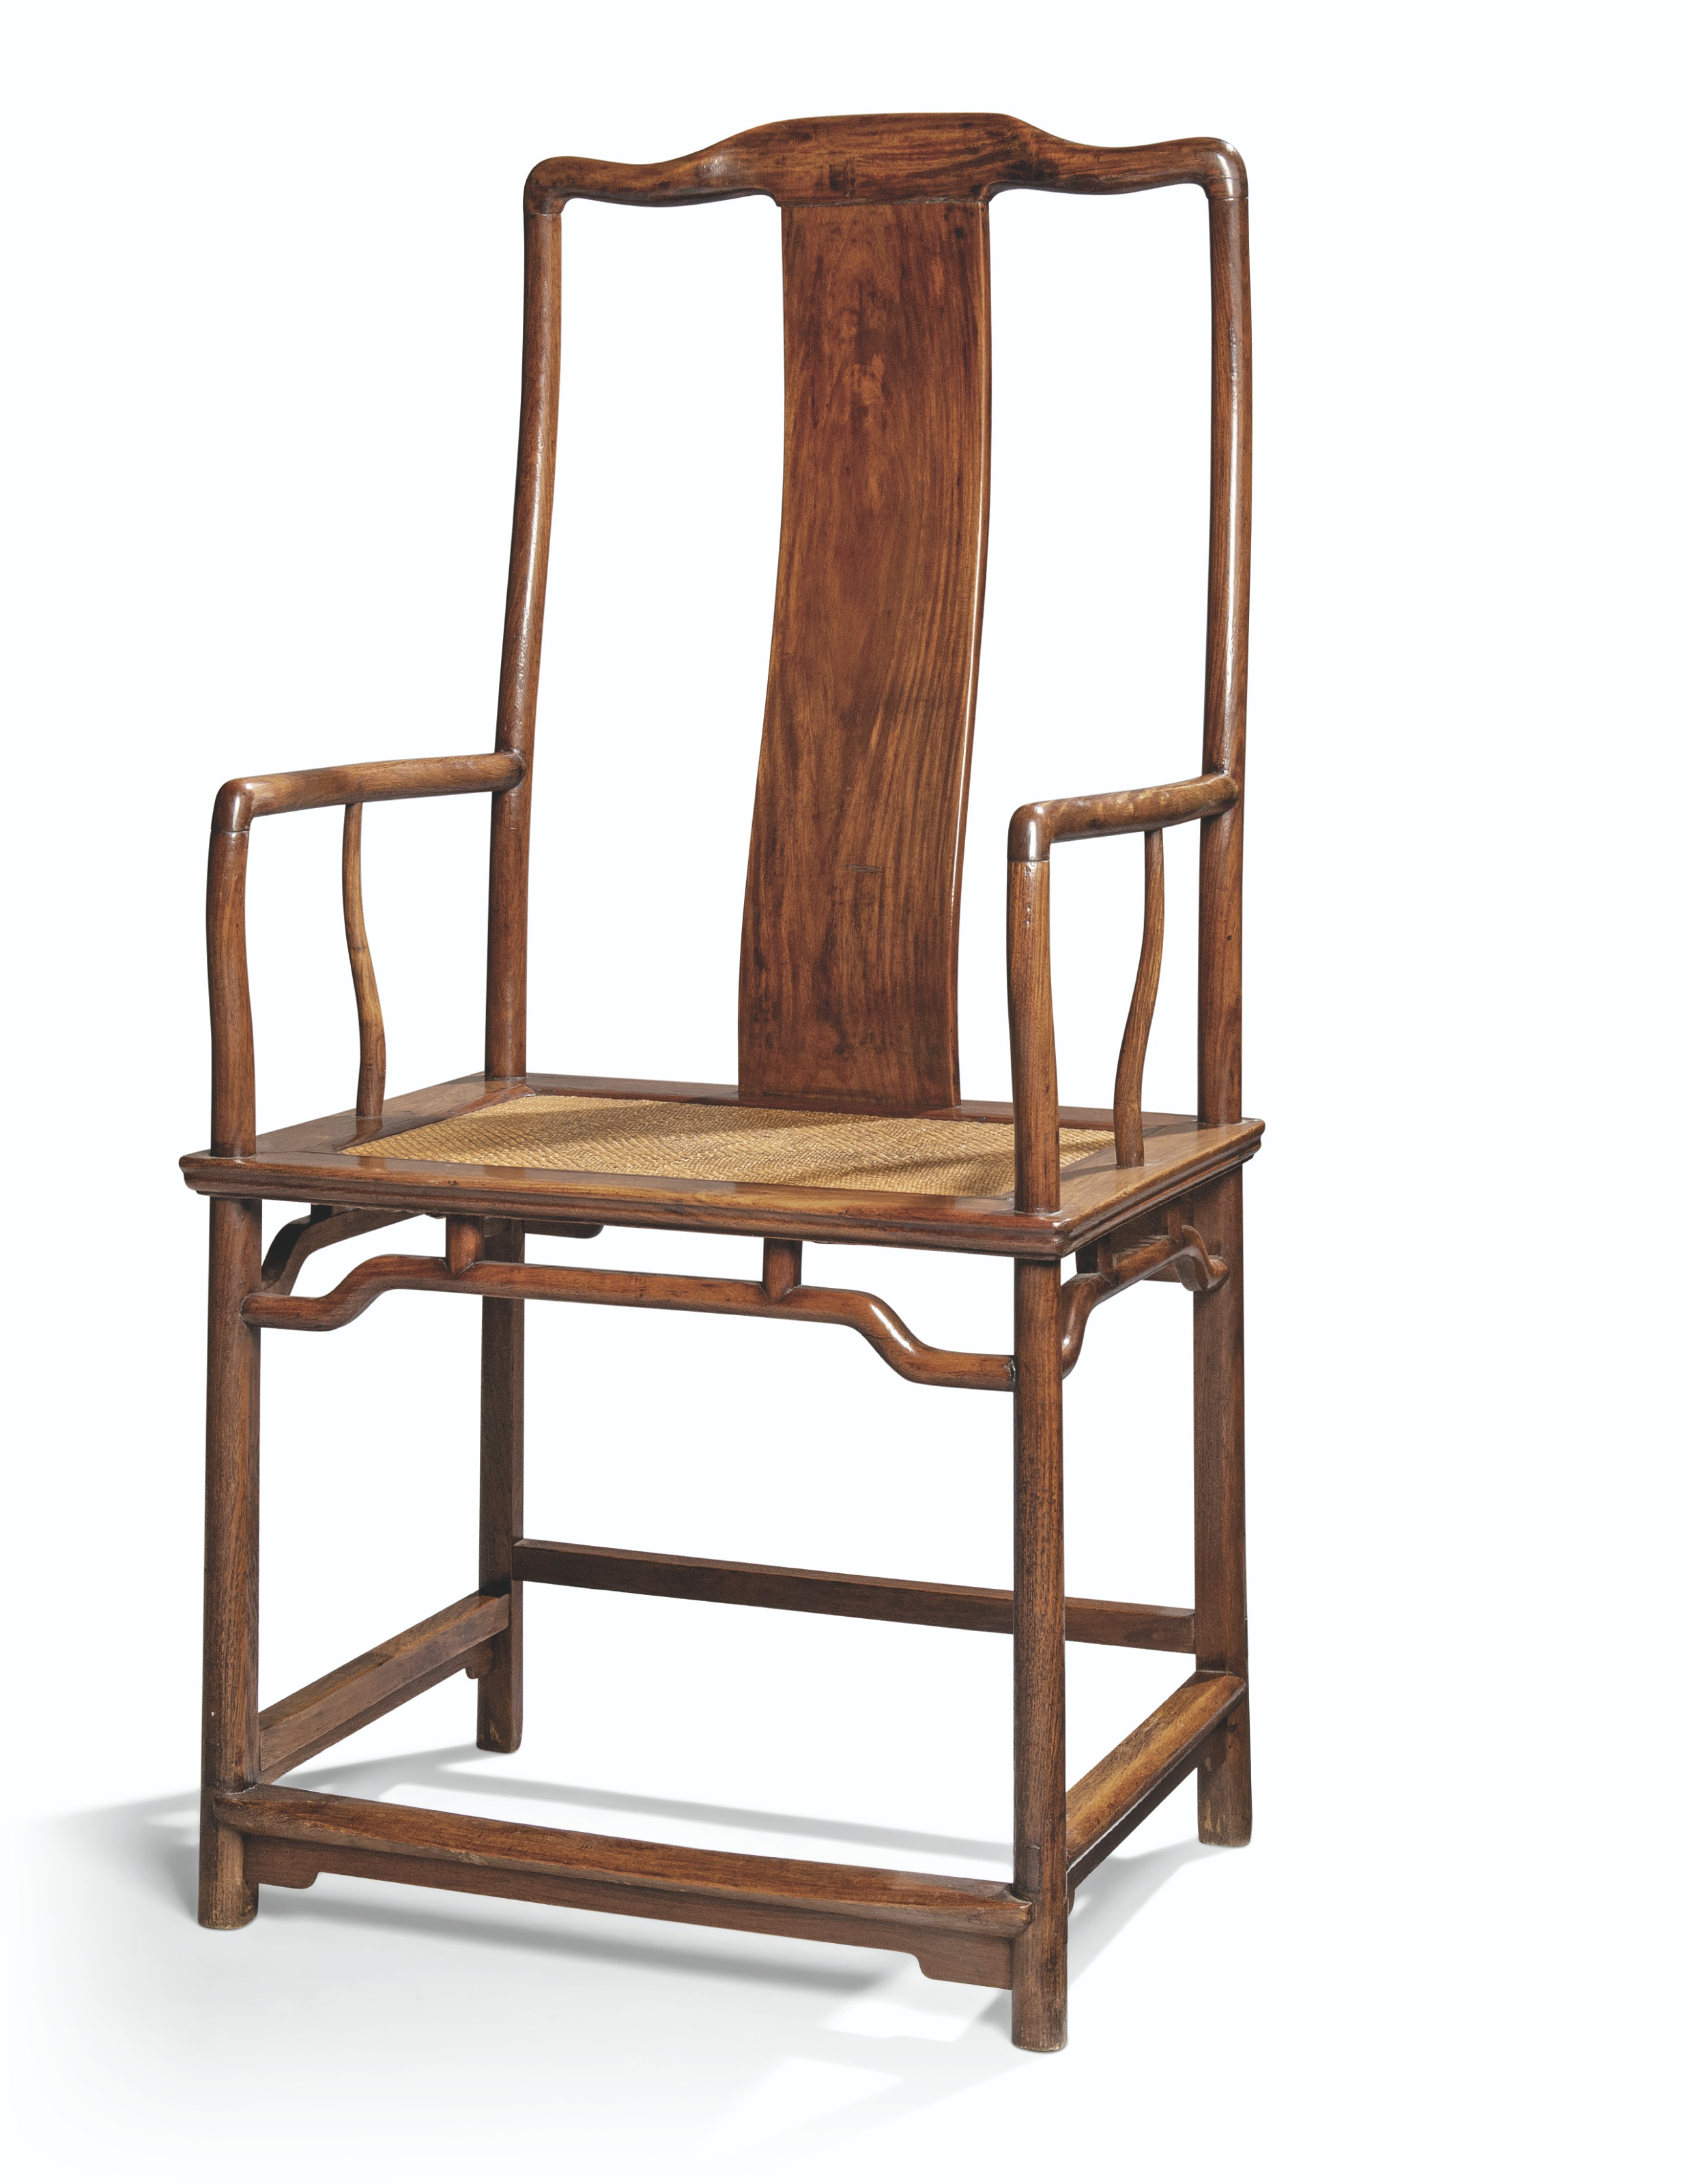 A MAGNIFICENT AND RARE LARGE HUANGHUALI SOUTHERN OFFICIAL'S HAT ARMCHAIR, NANGUANMAOYI